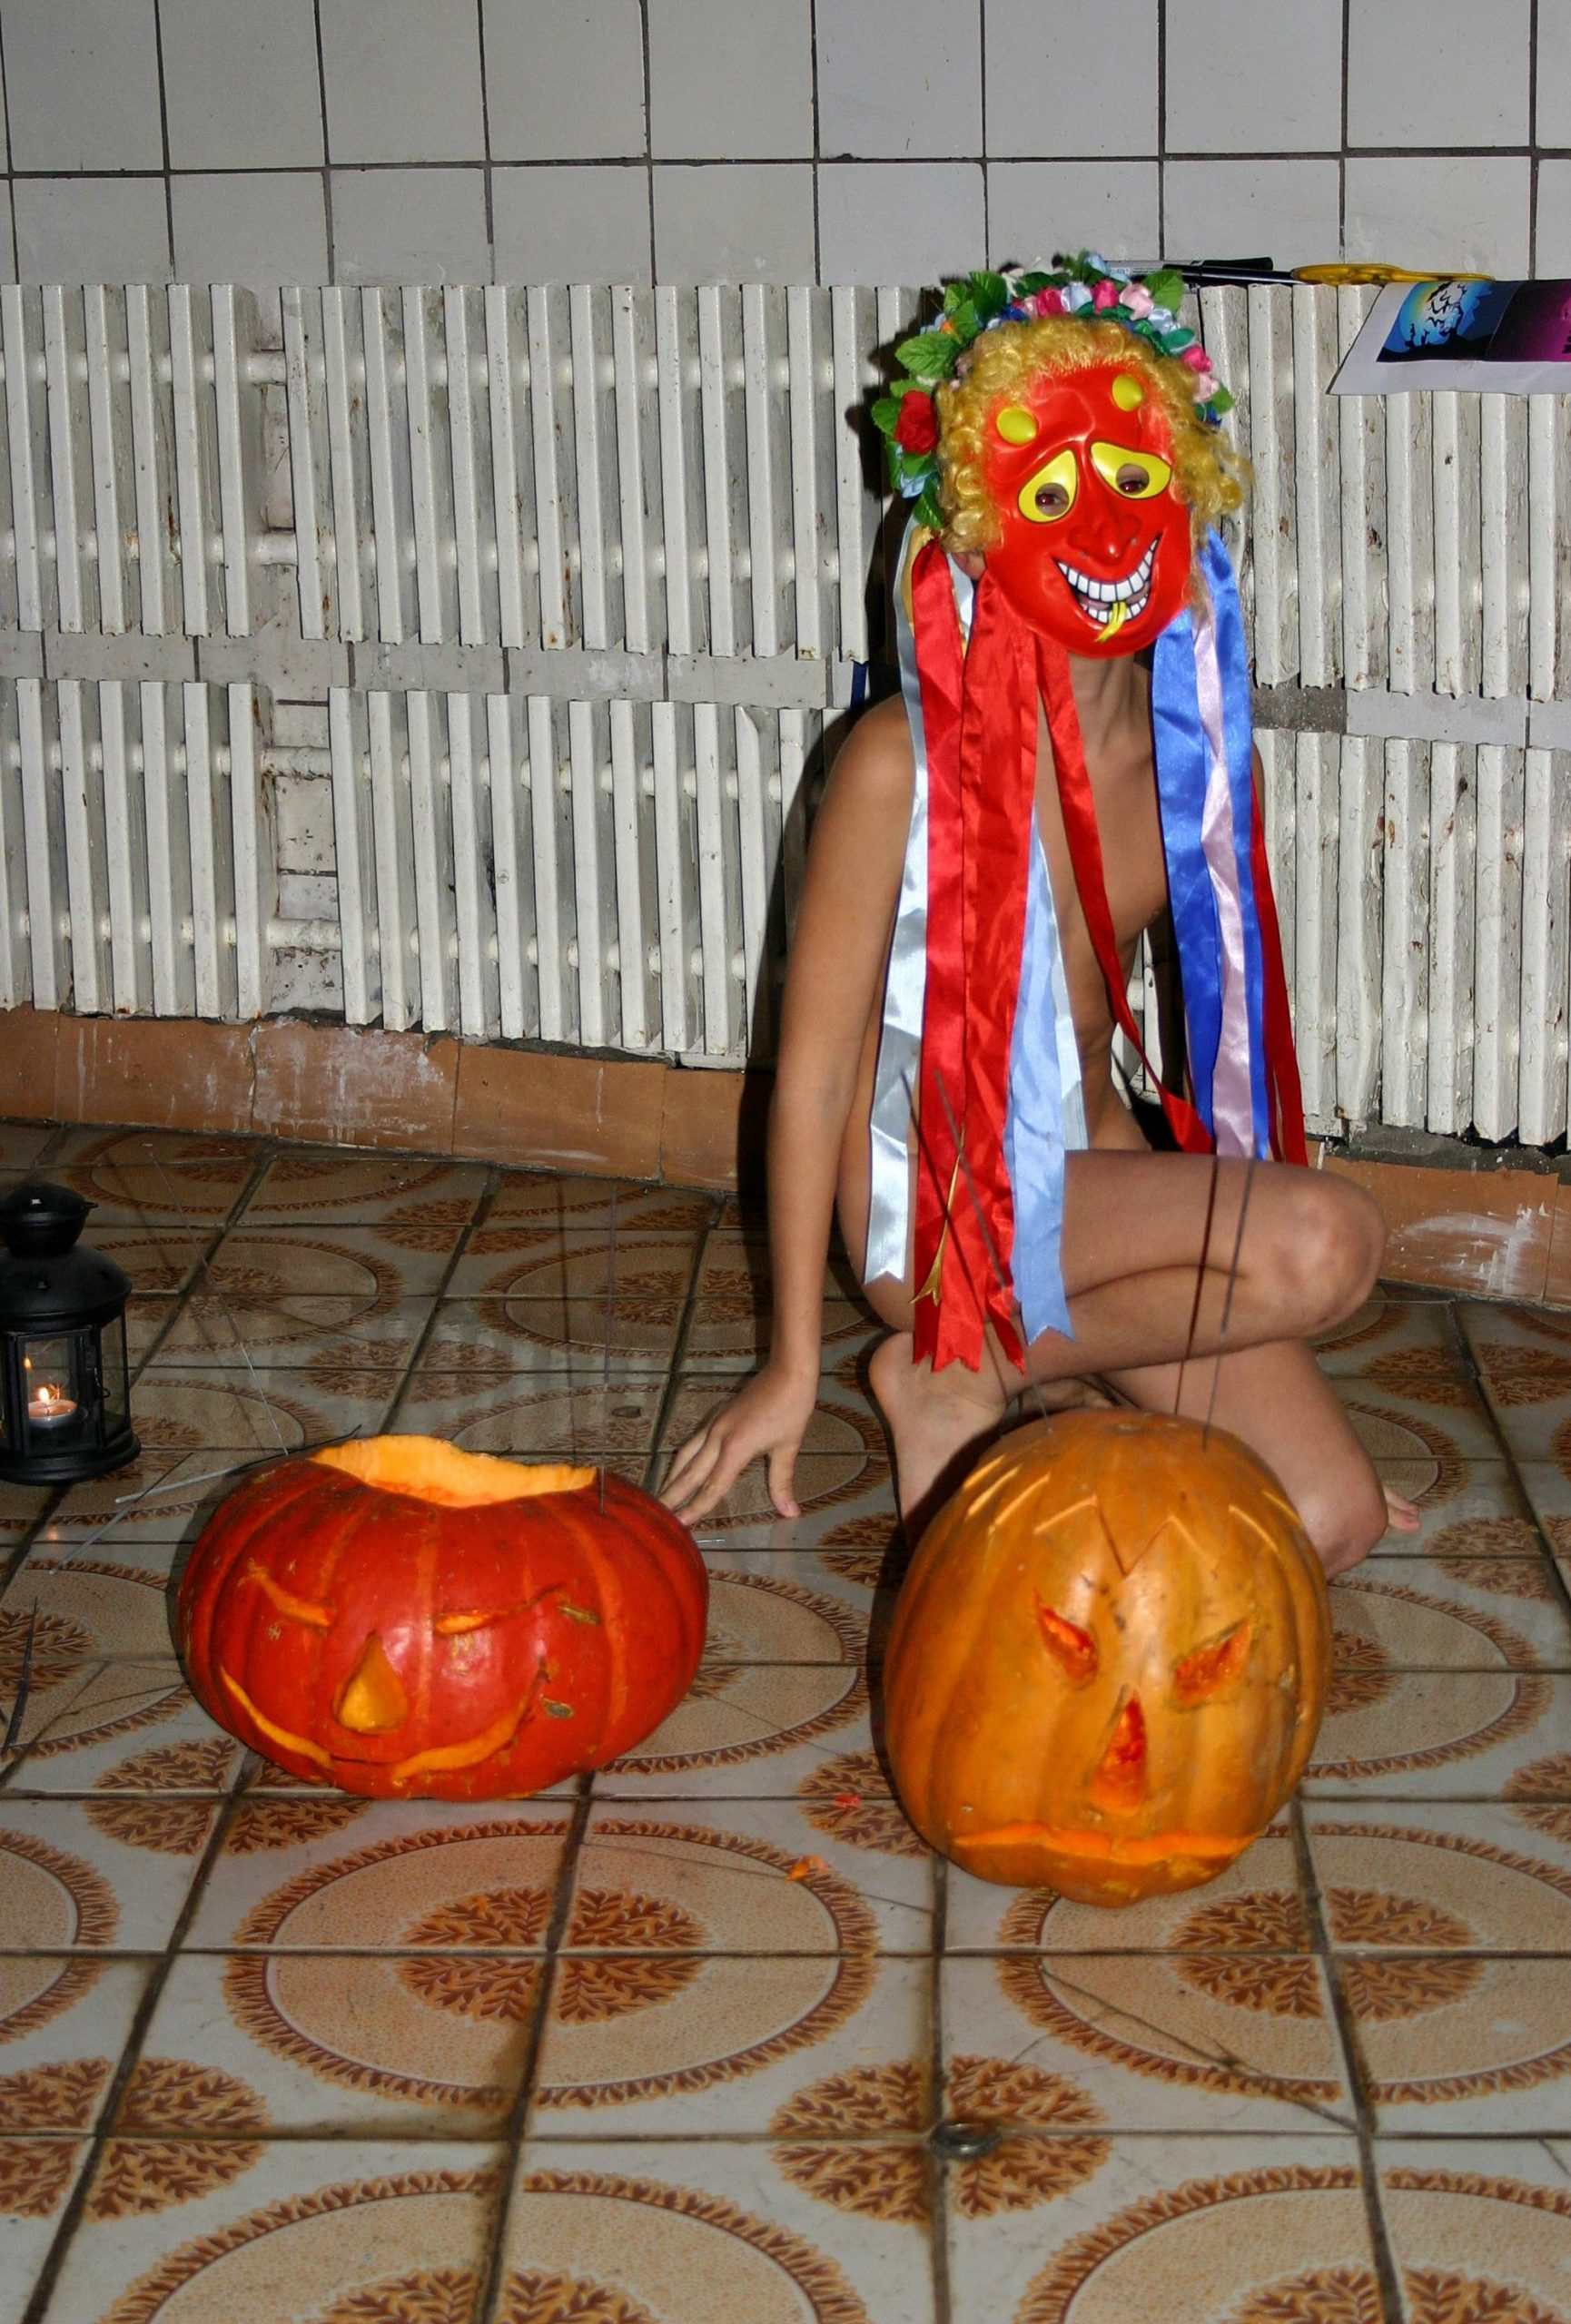 Purenudism Pics-Halloween Odds and Ends - 1